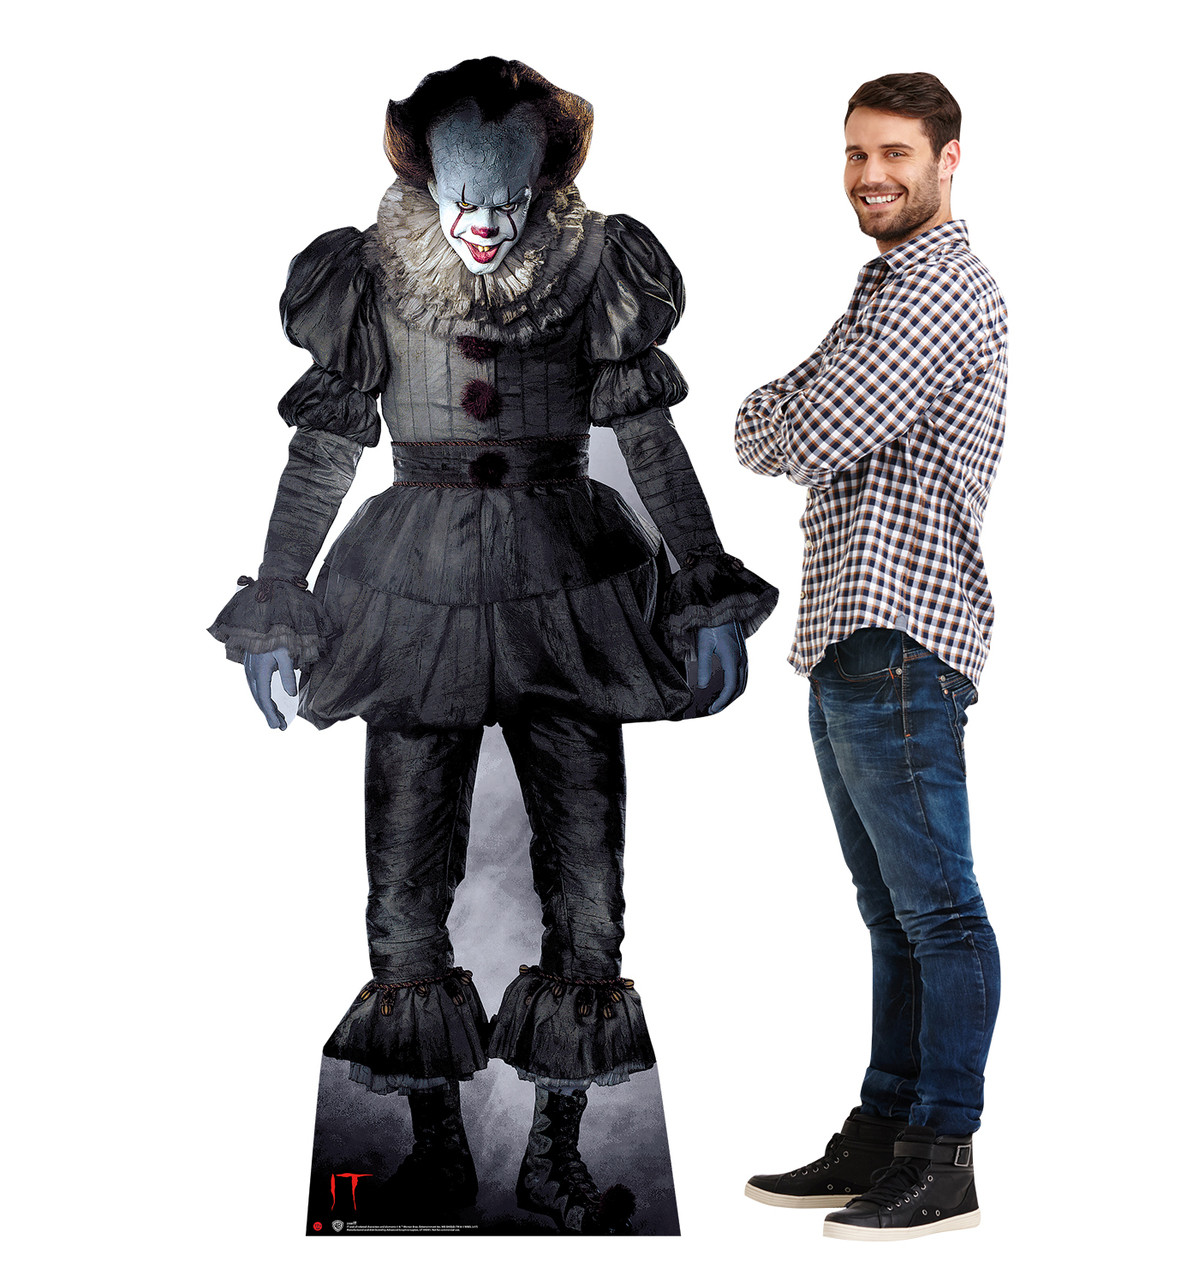 Pennywise from IT Movie 2017 Cardboard Cutout-lifesize